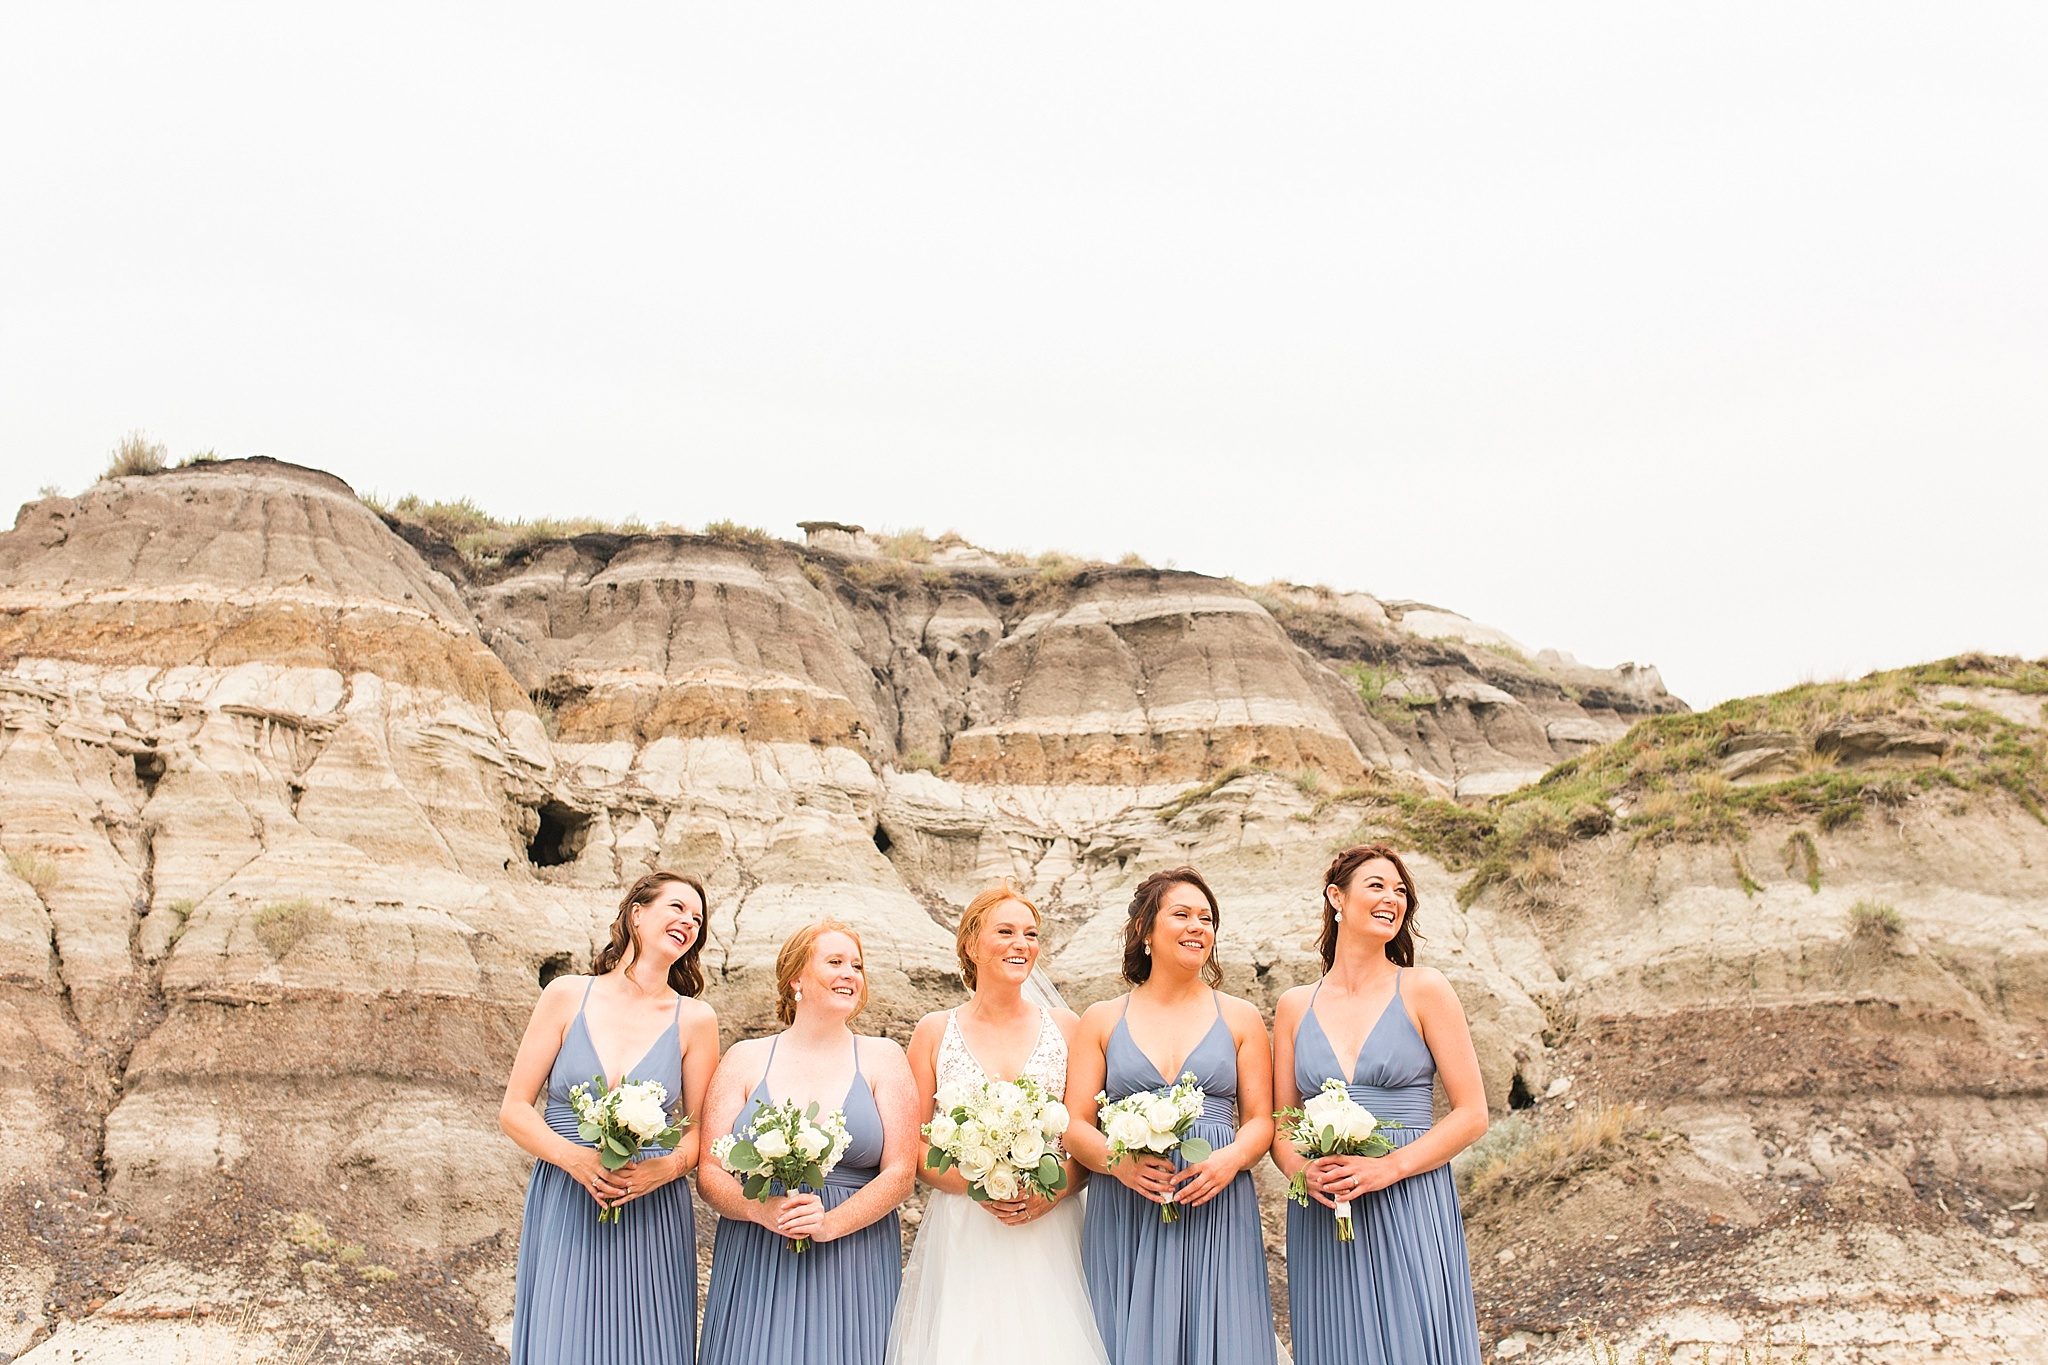 drumheller wedding125.JPG